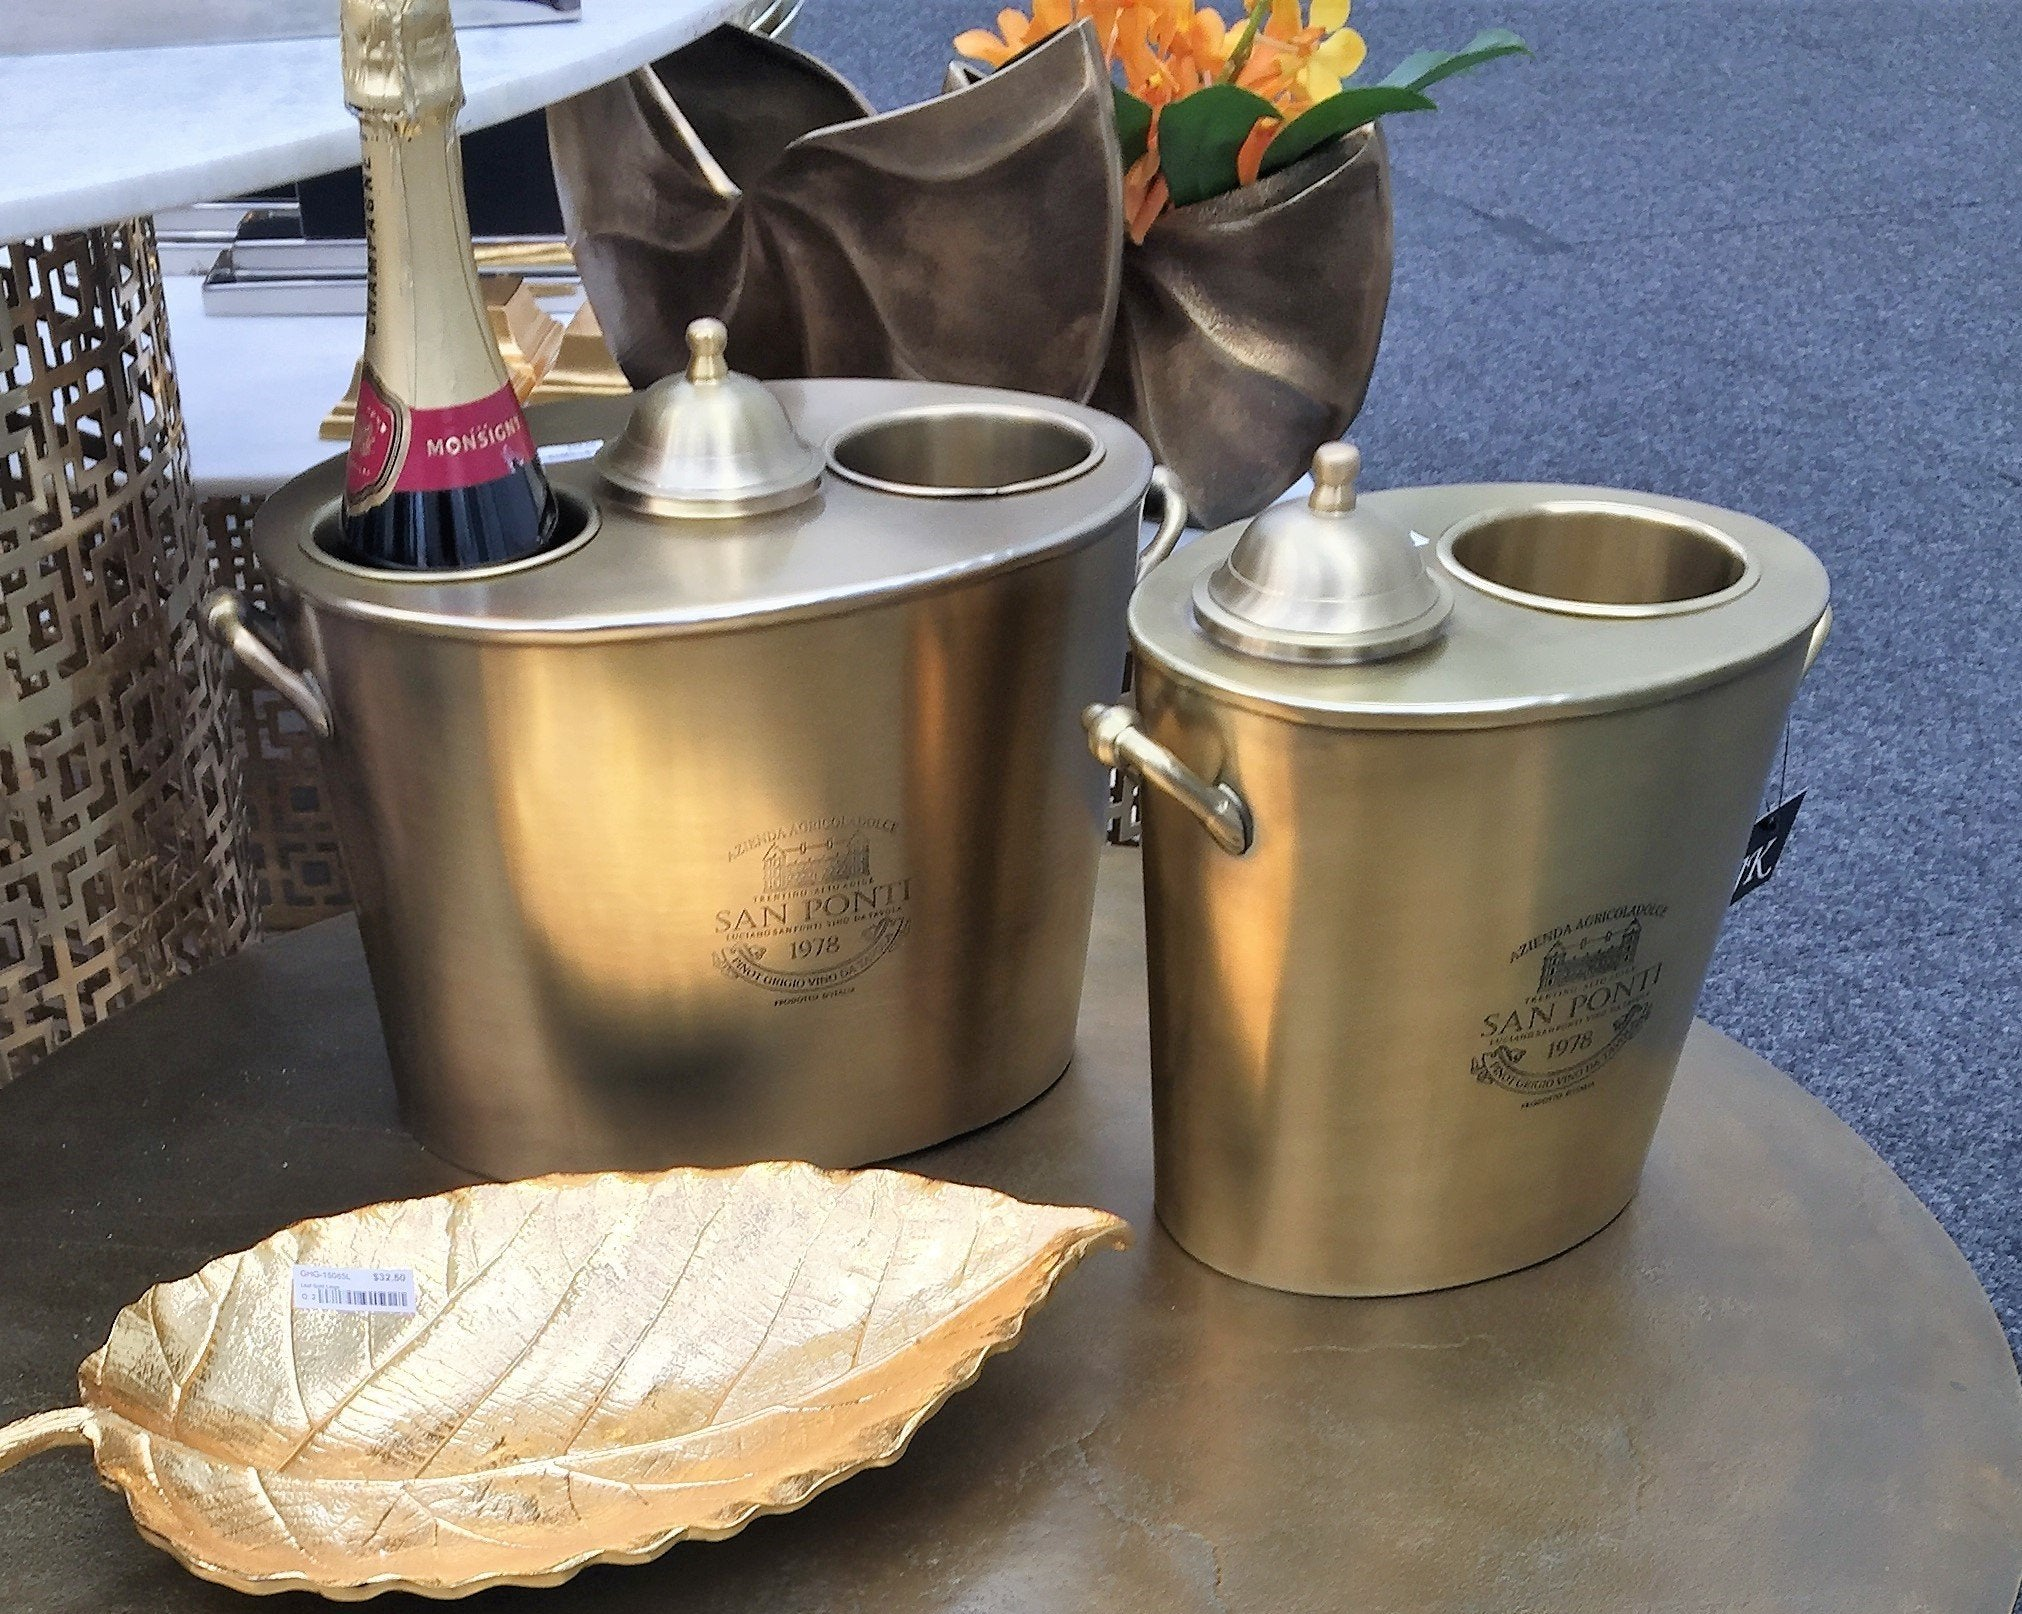 San Ponti Wine Cooler Brass